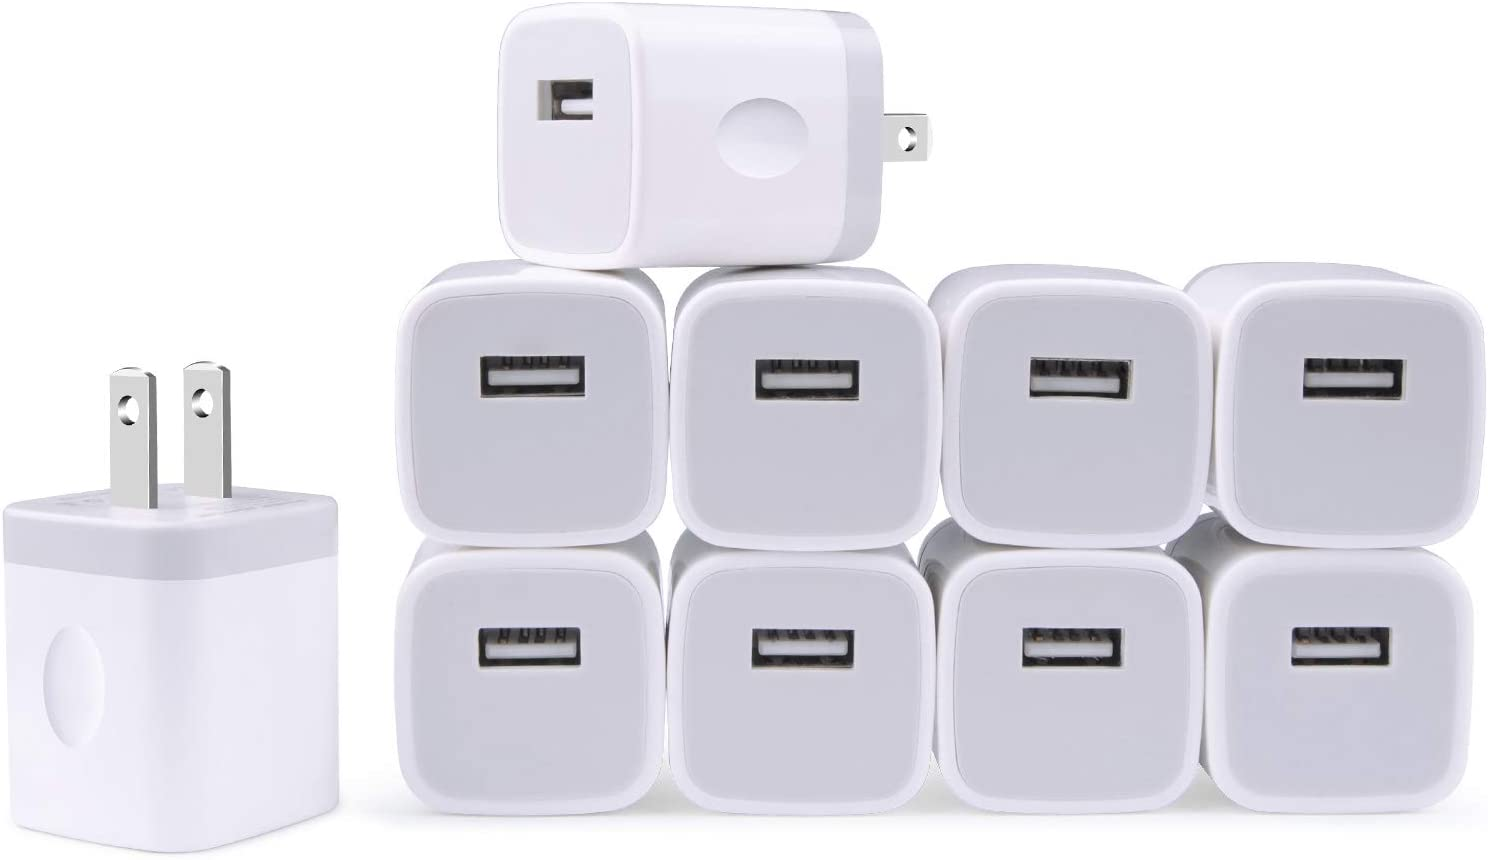 Charging Block for iPhone, Charger Box, USB Cube, NonoUV 10-Pack Single Port Wall Charger 1A/5V USB Outlet Plug Adapter Power Bricks for iPhone SE (2020) 11 Pro XR XS X 8 7 6 6S Plus, iPad, Samsung